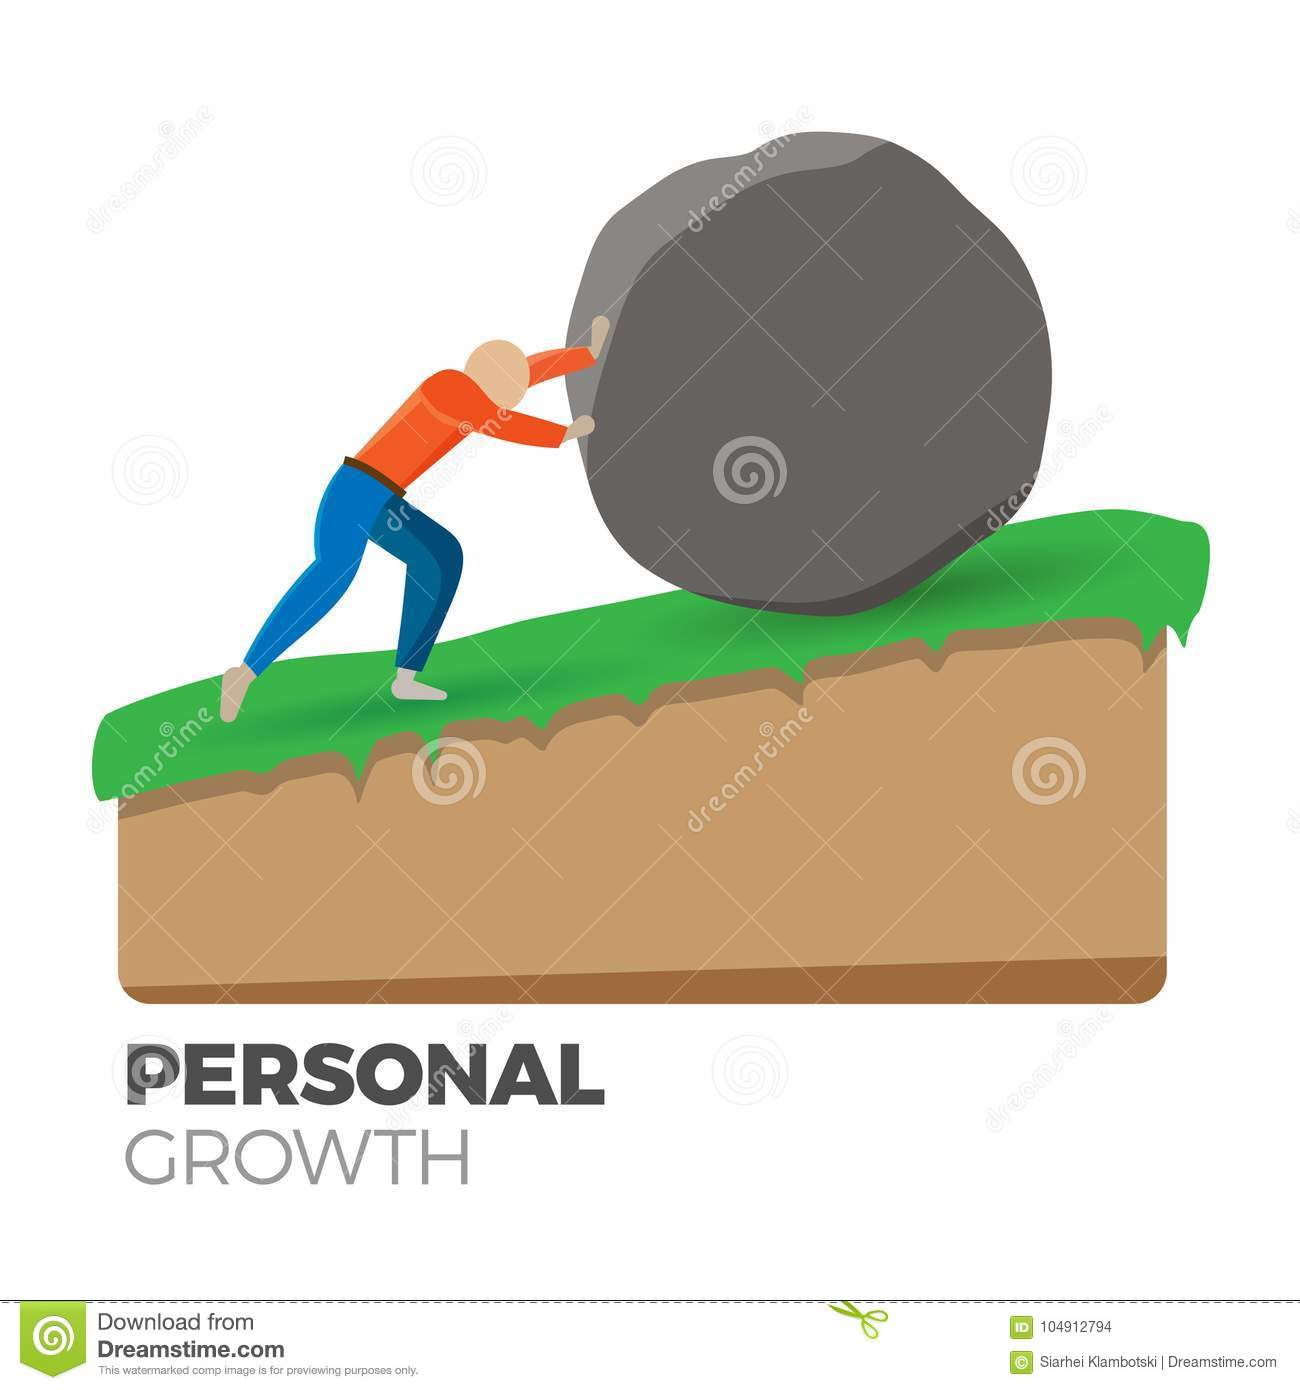 Personal Growth Concept Stock Vector Illustration Of Growth 104912794